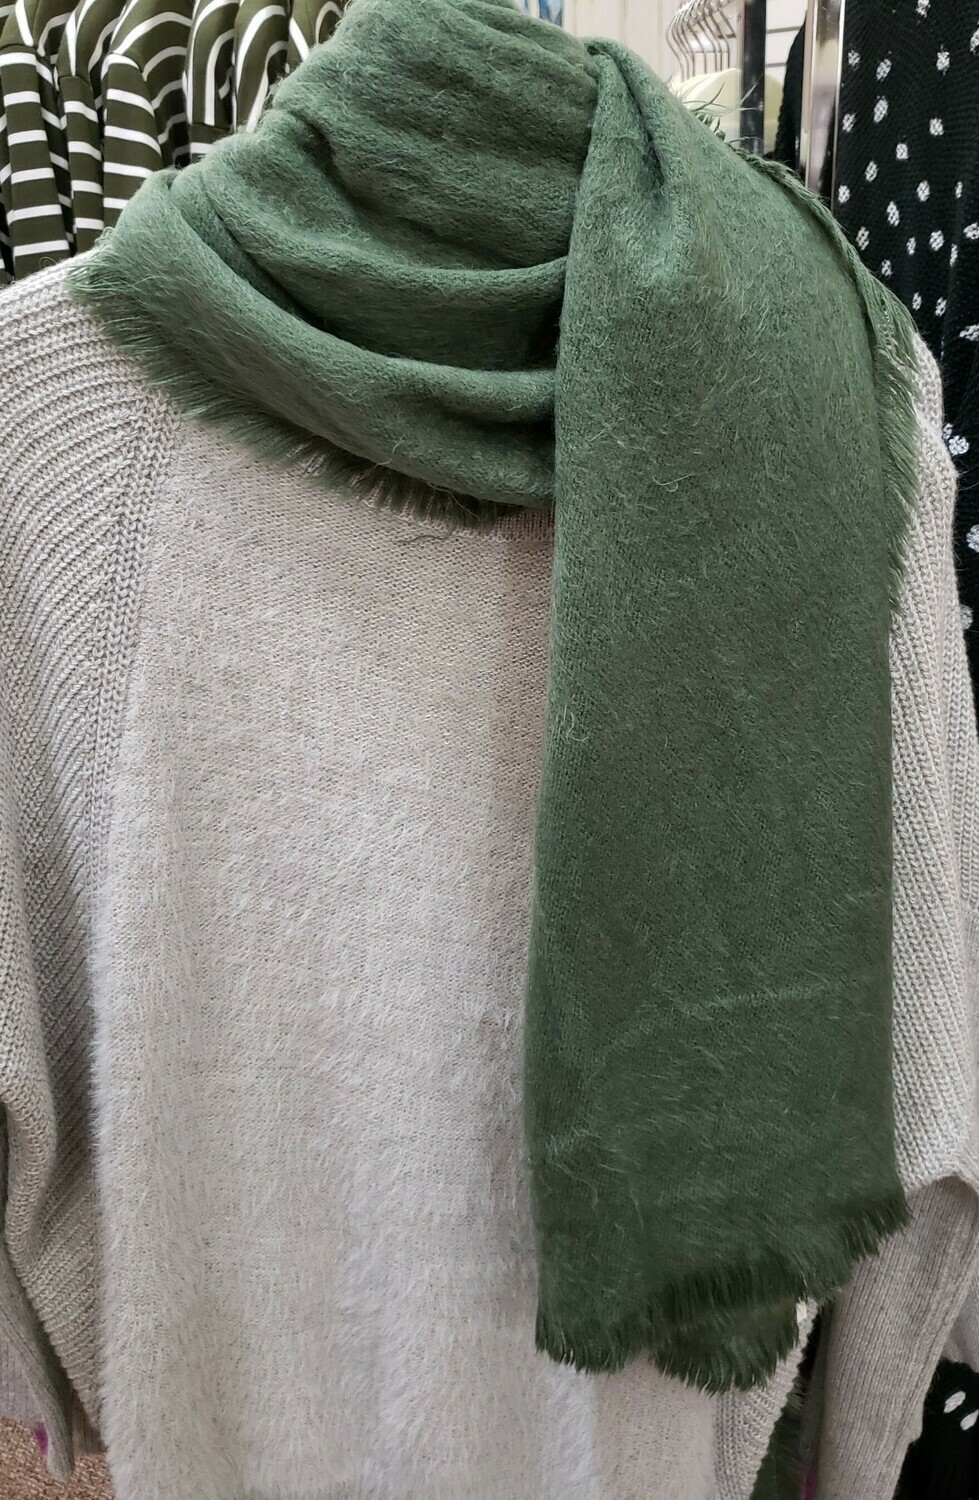 Brushed Scarf - Super Soft!!